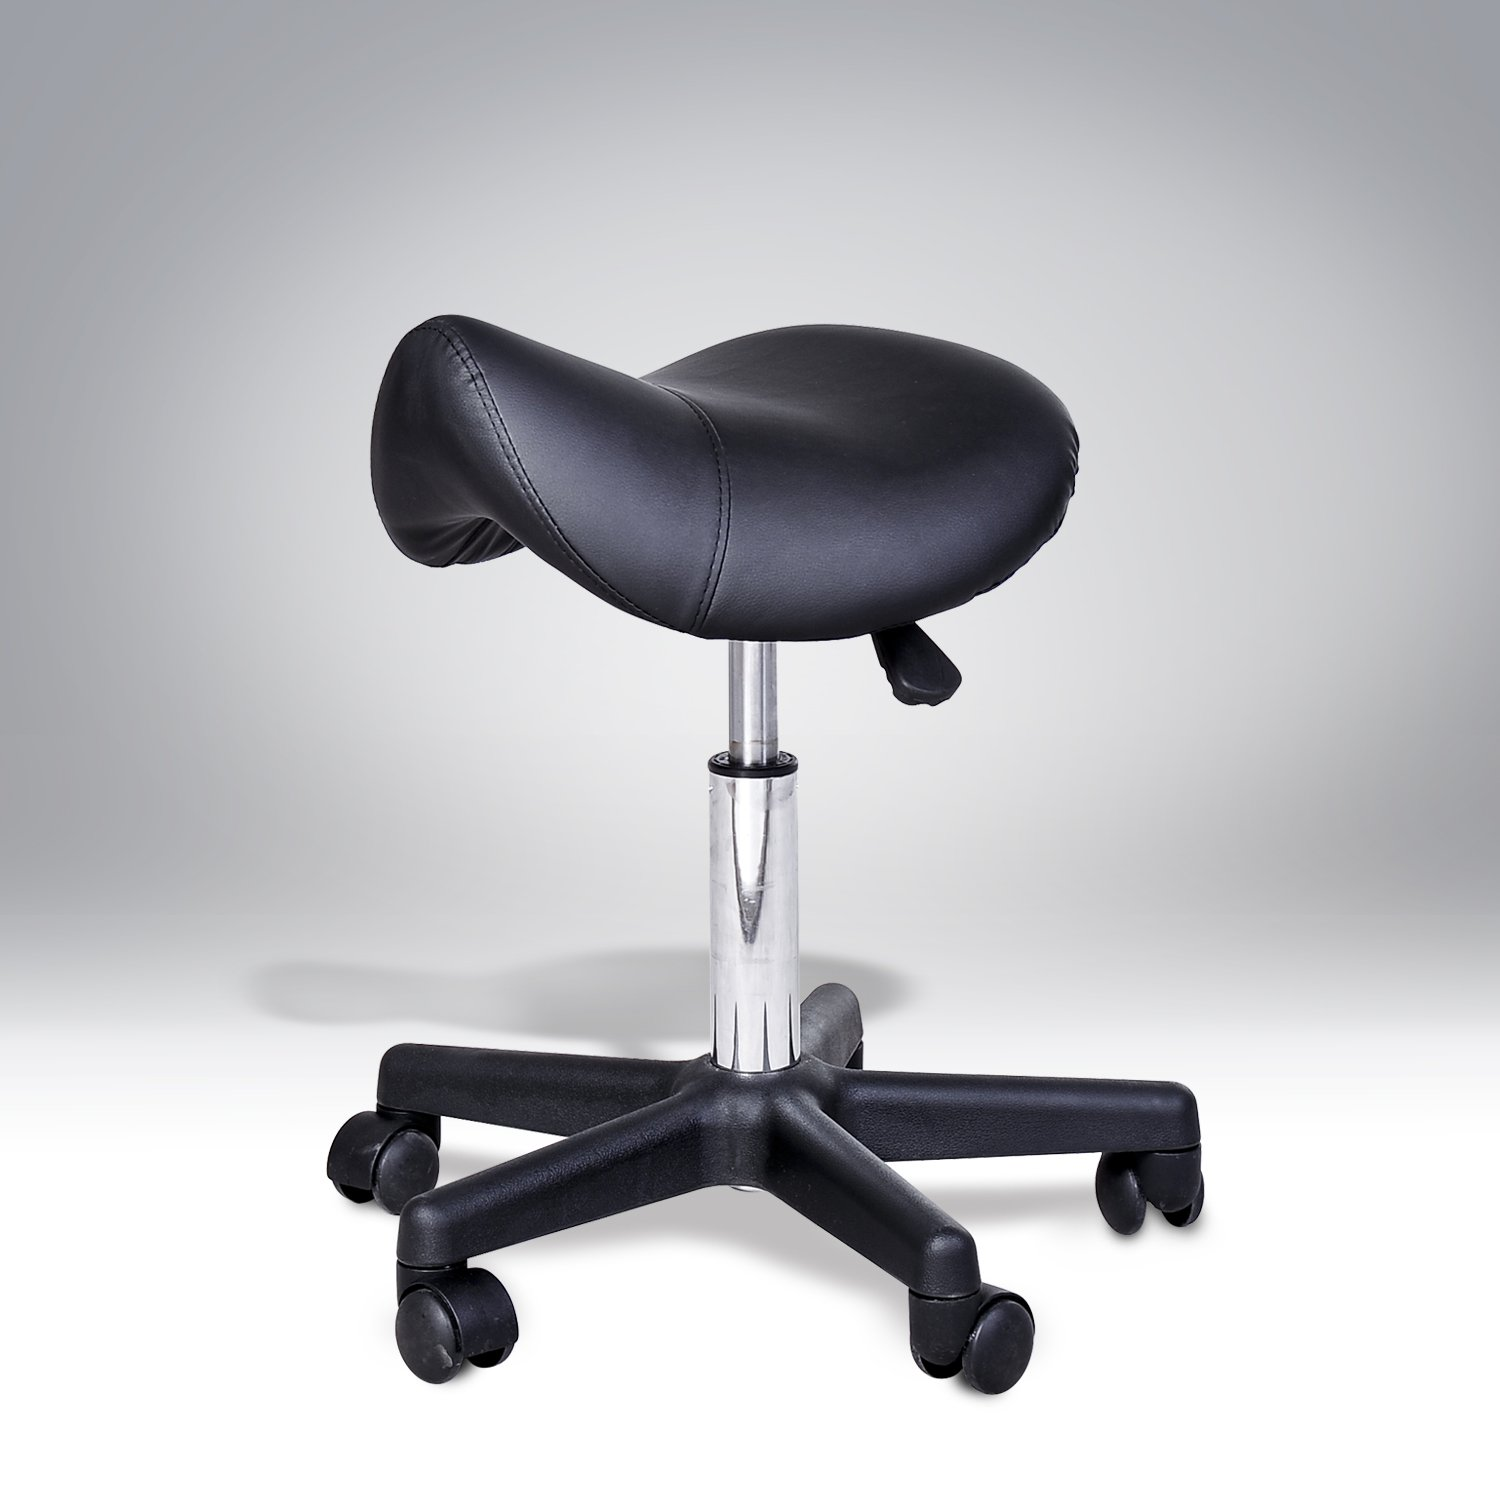 homcom massage beauty therapy gas stool height adjustable saddle